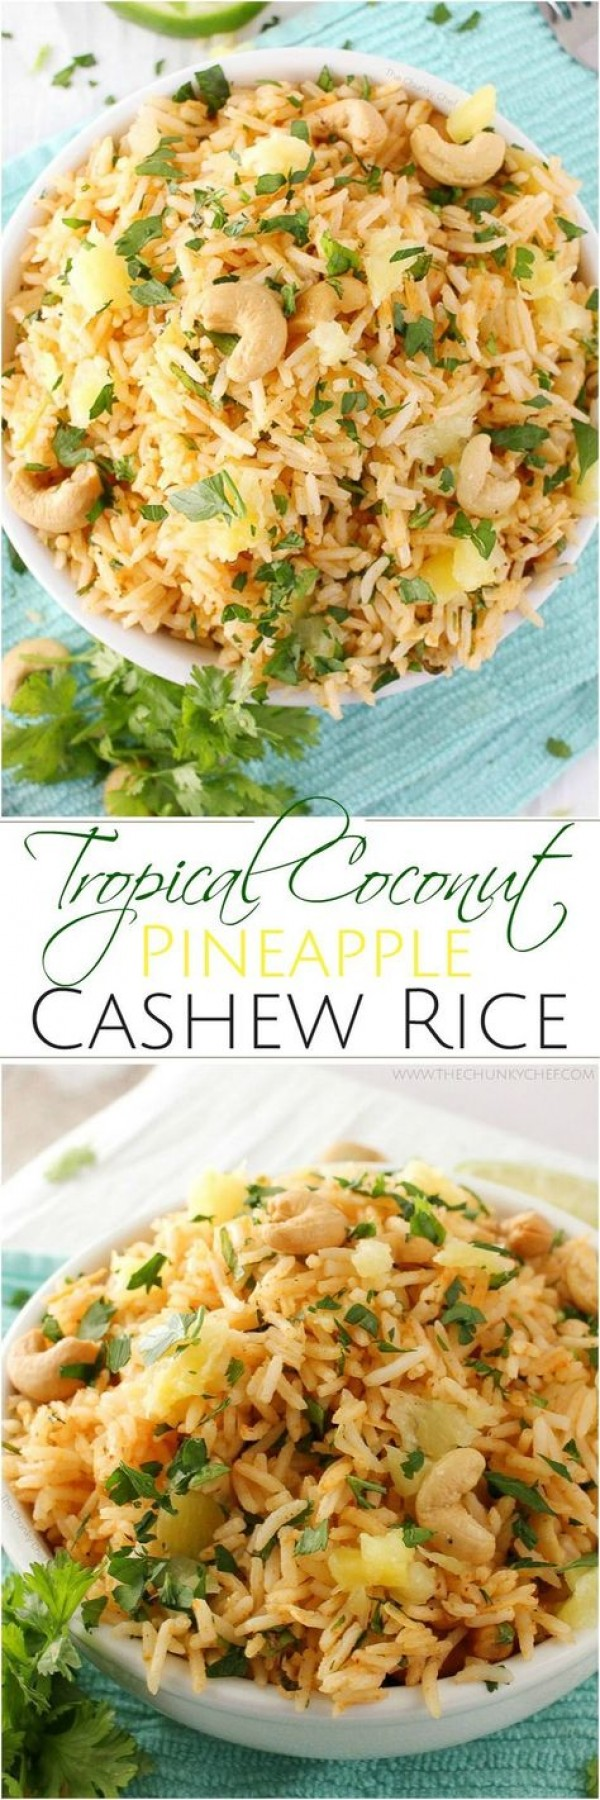 Get the recipe Tropical Coconut Pineapple Cashew Rice @recipes_to_go